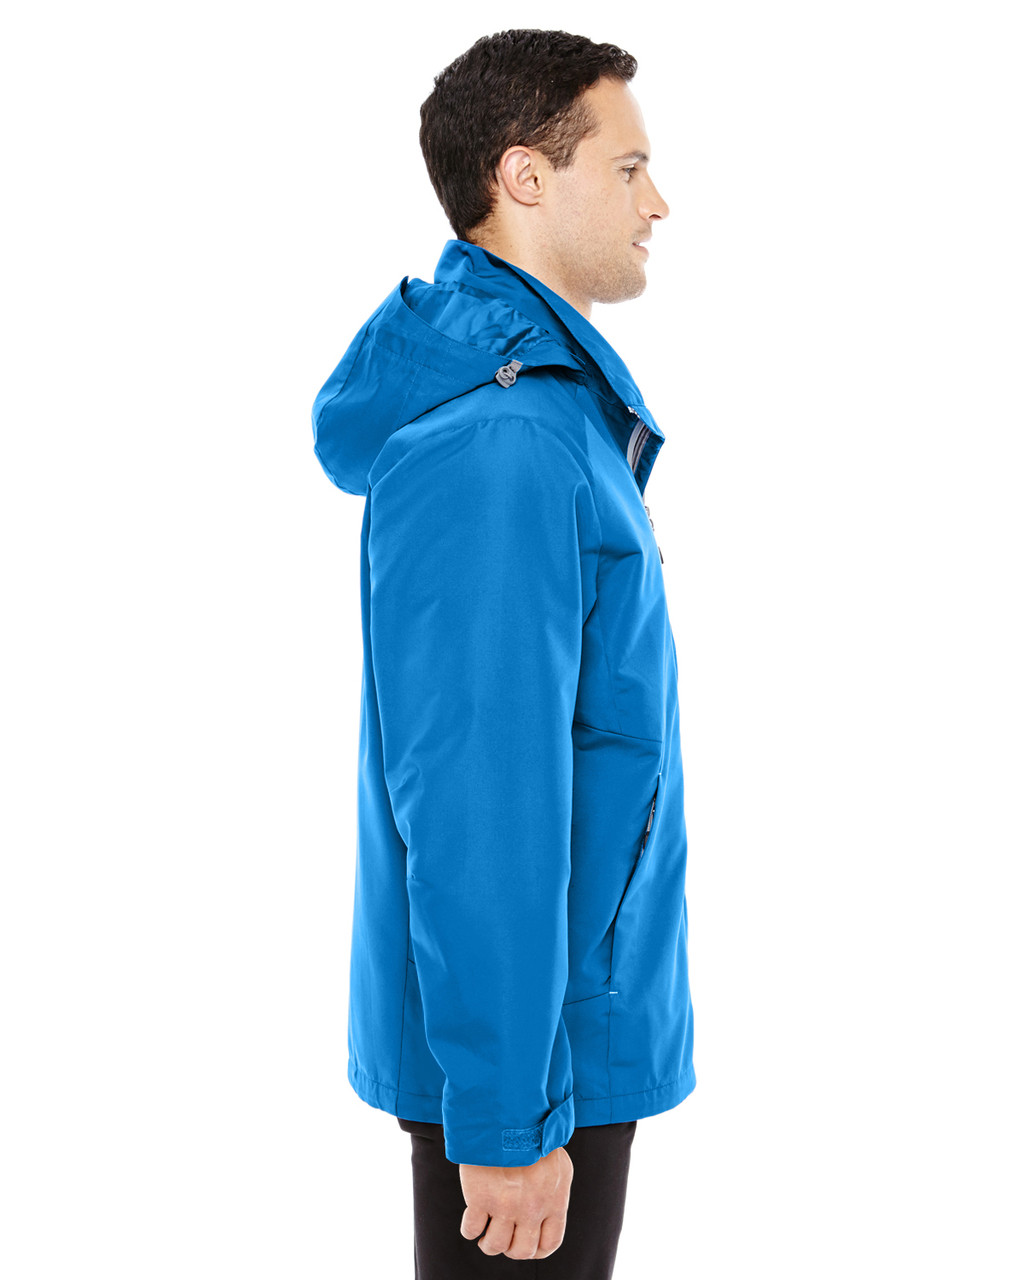 Nautical Blue/Platinum-side 88226 North End Men's Insight Interactive Shell Jacket | Blankclothing.ca